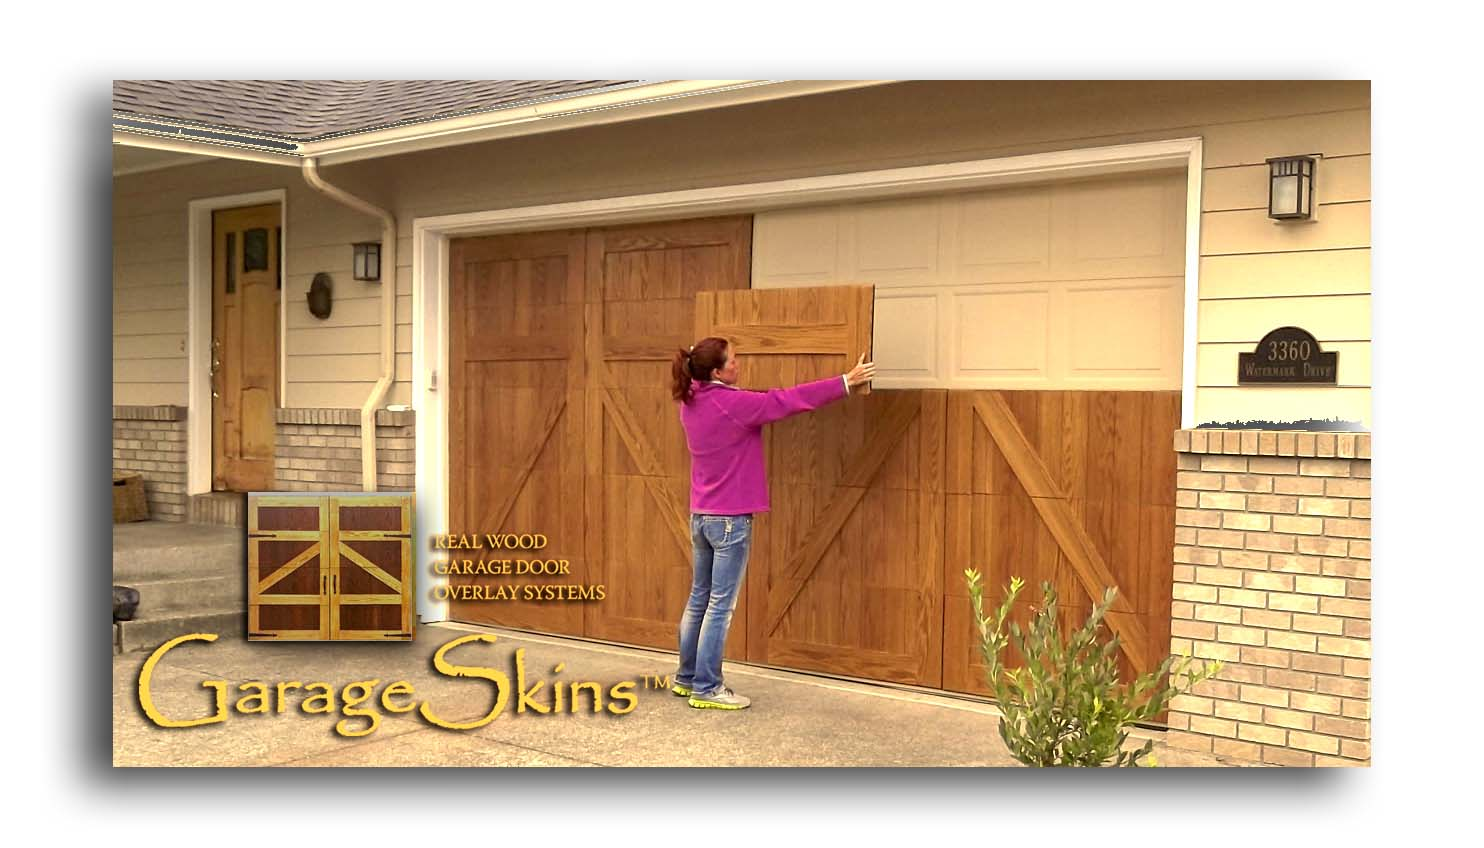 what are garageskins real wood garage door overlays